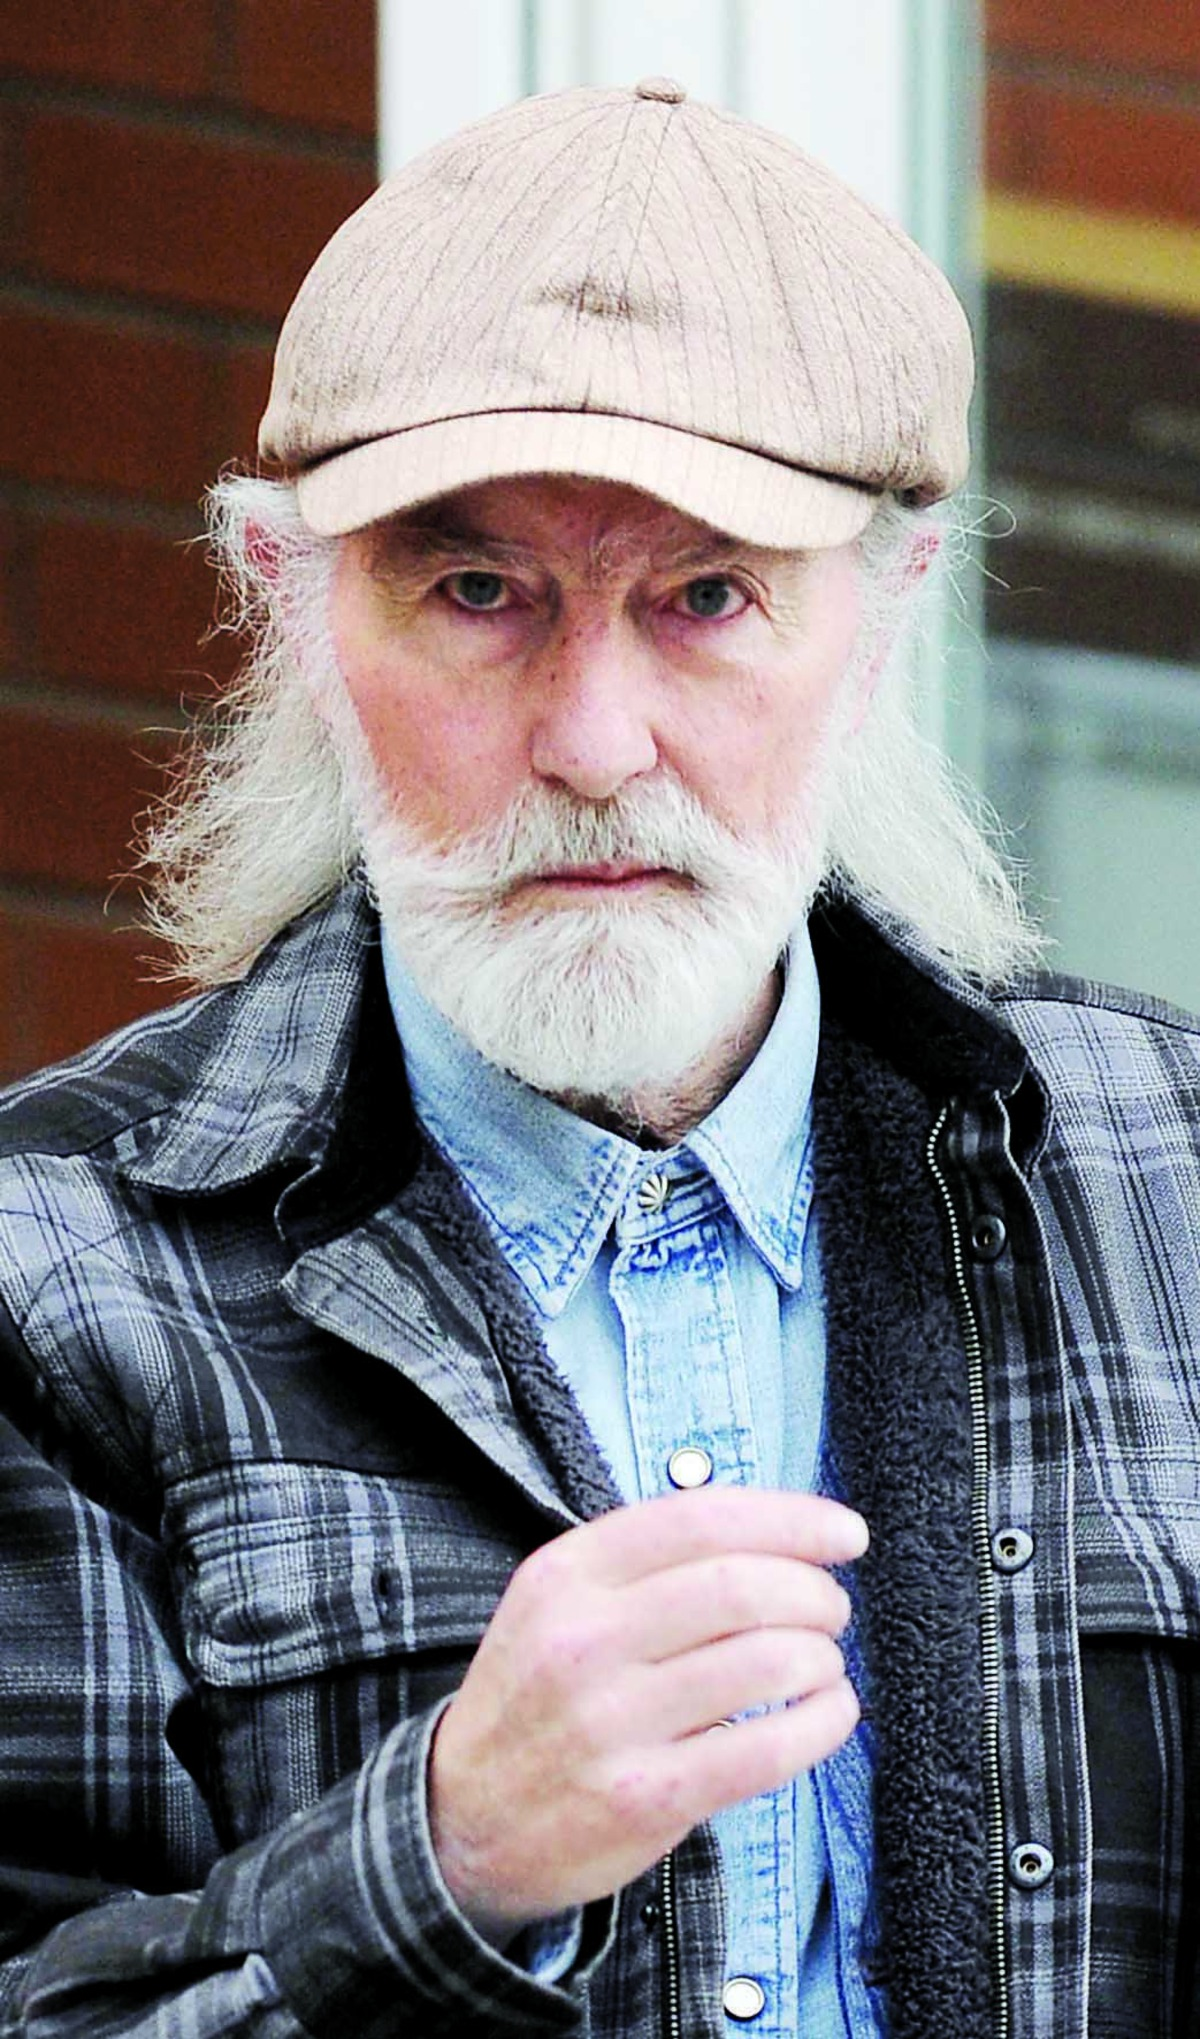 Folk singer Roy Harper to face a trial in August